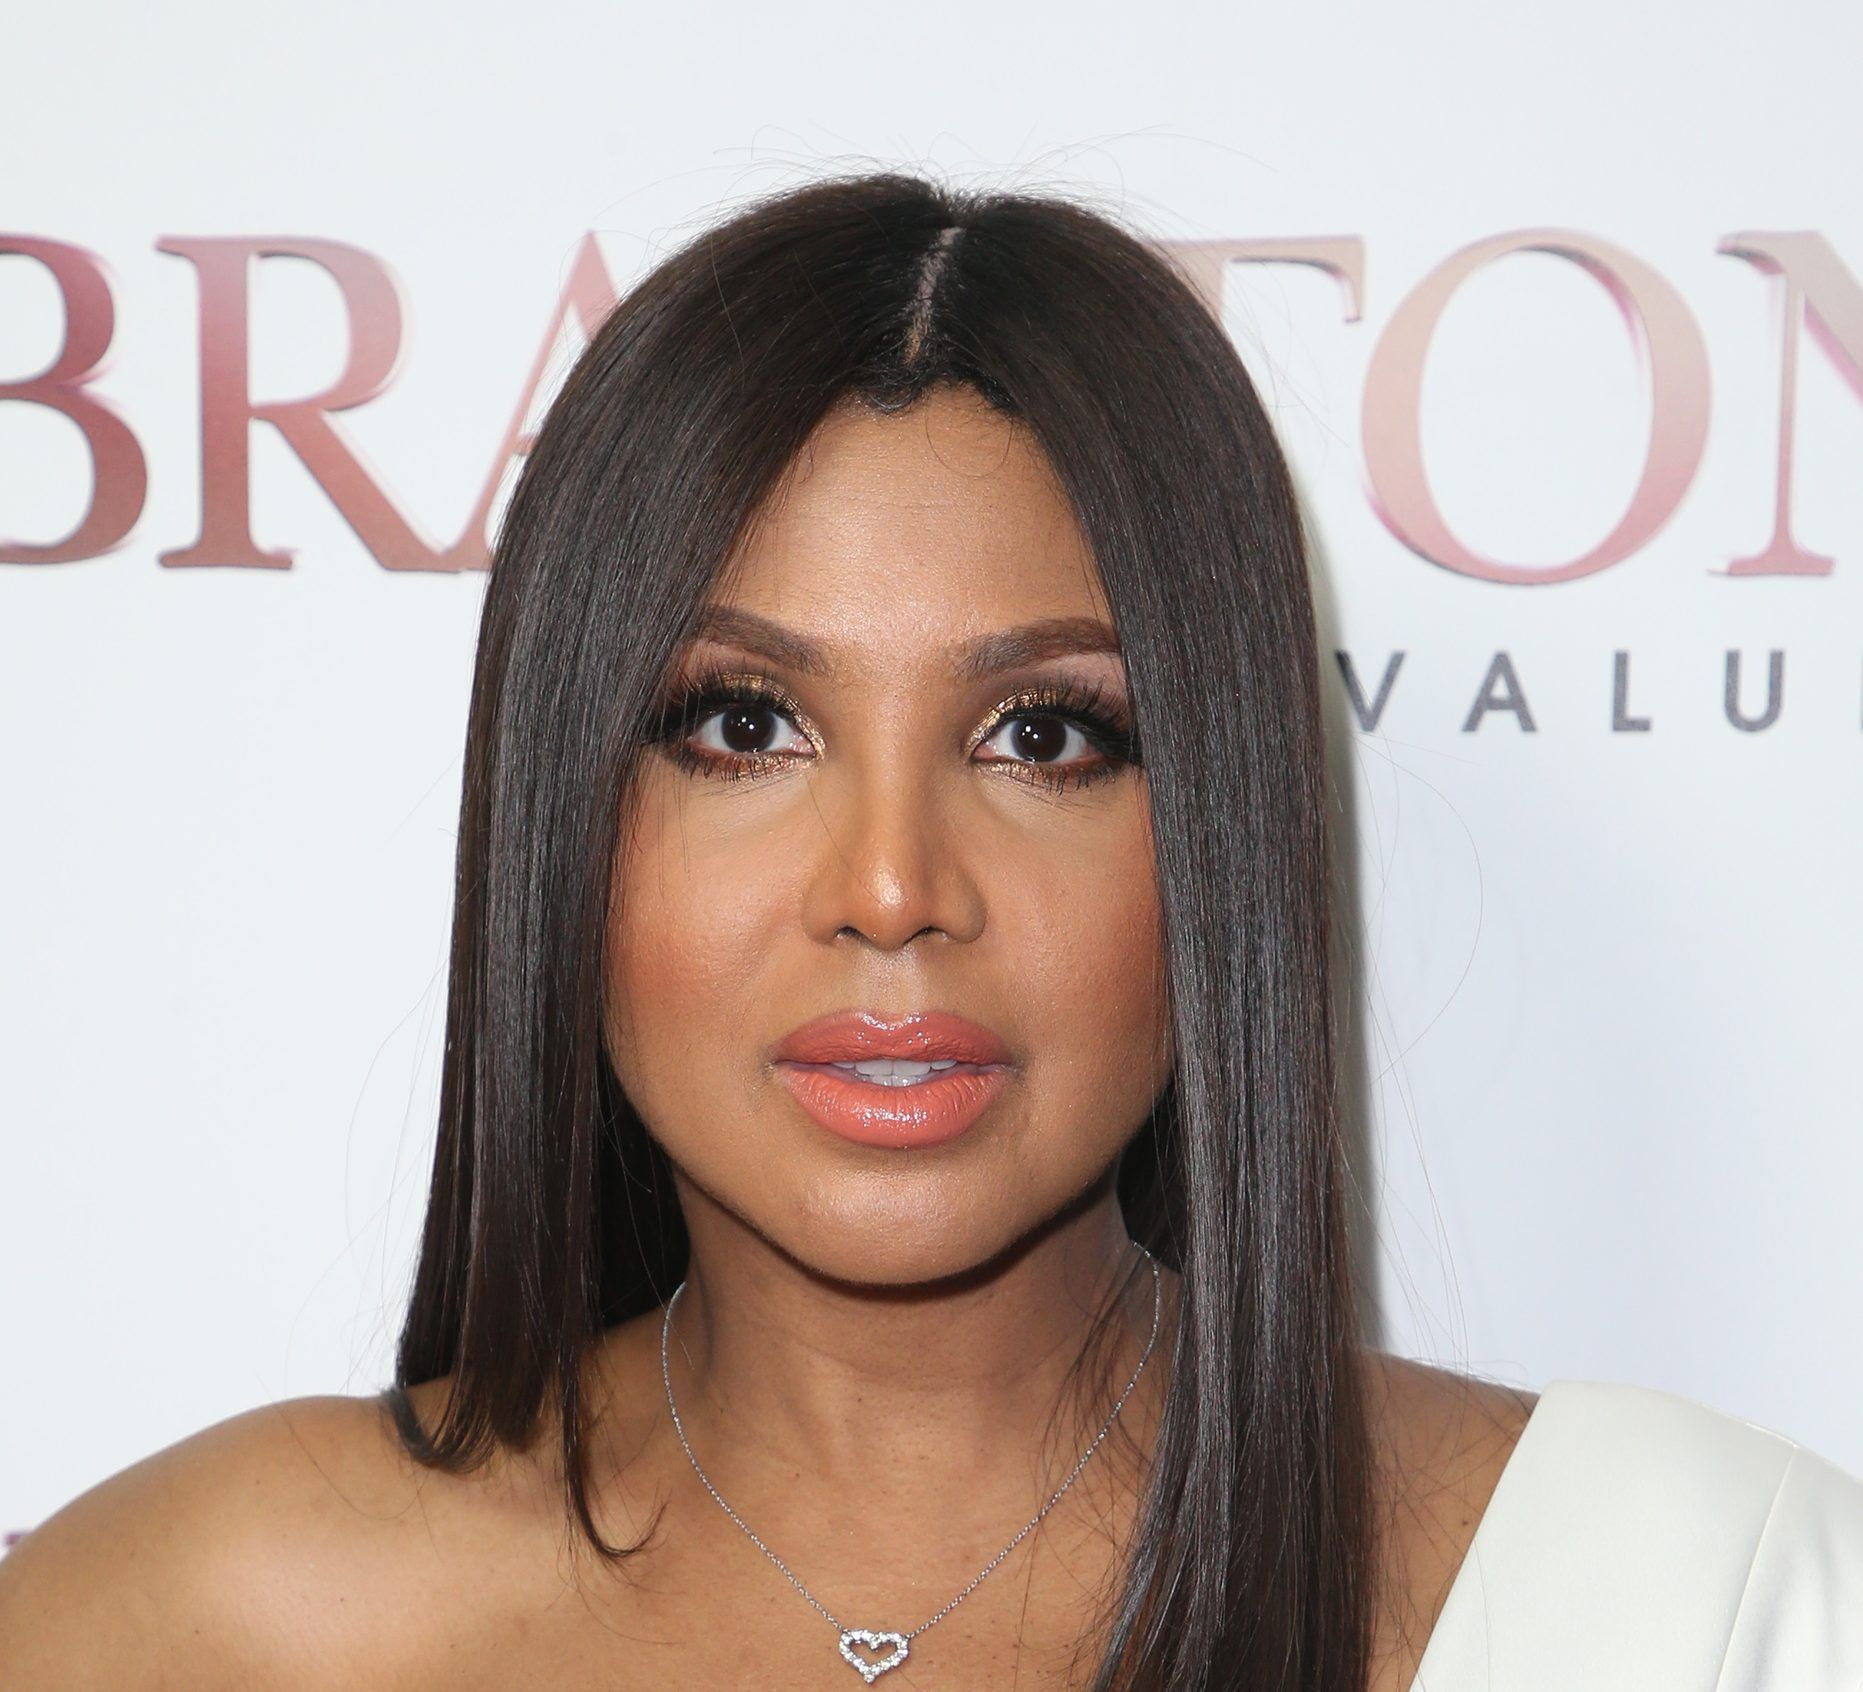 Toni Braxton Has Fans Emotional With This Throwback Video In Which She Was Addressing Her Goals